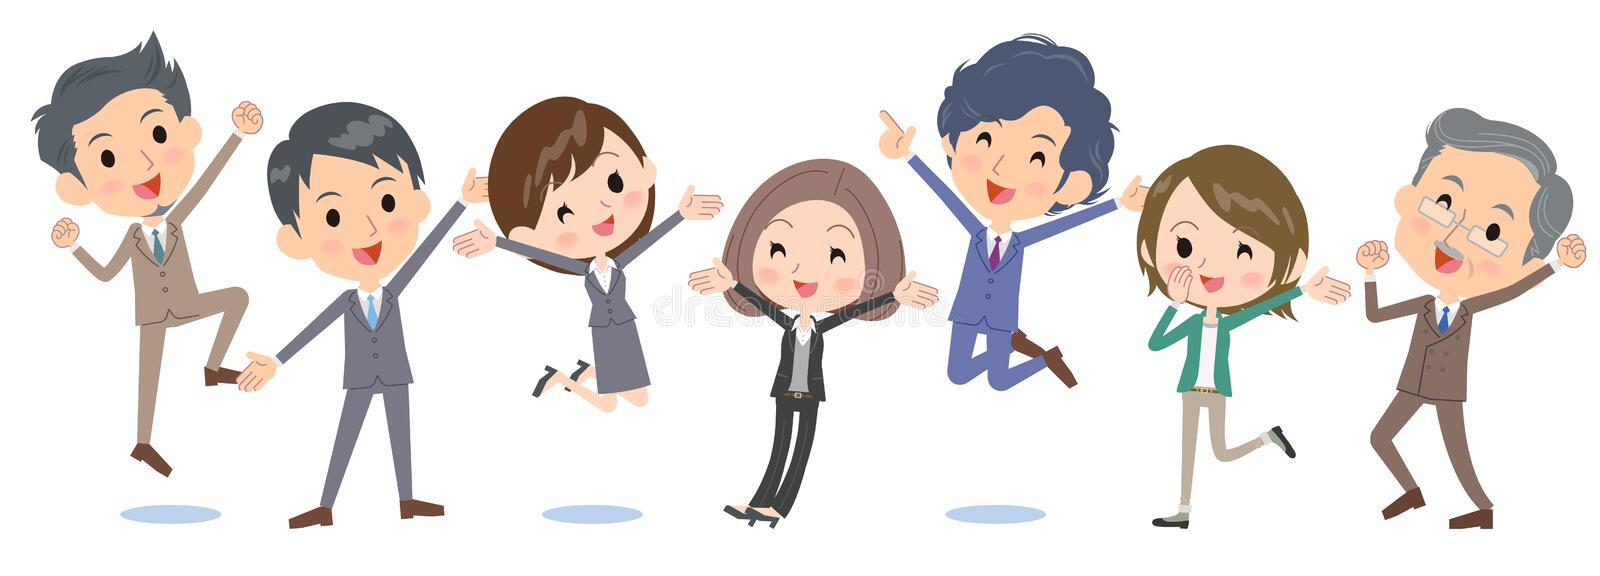 Business people_jump happy side by side. Illustration vector illustration